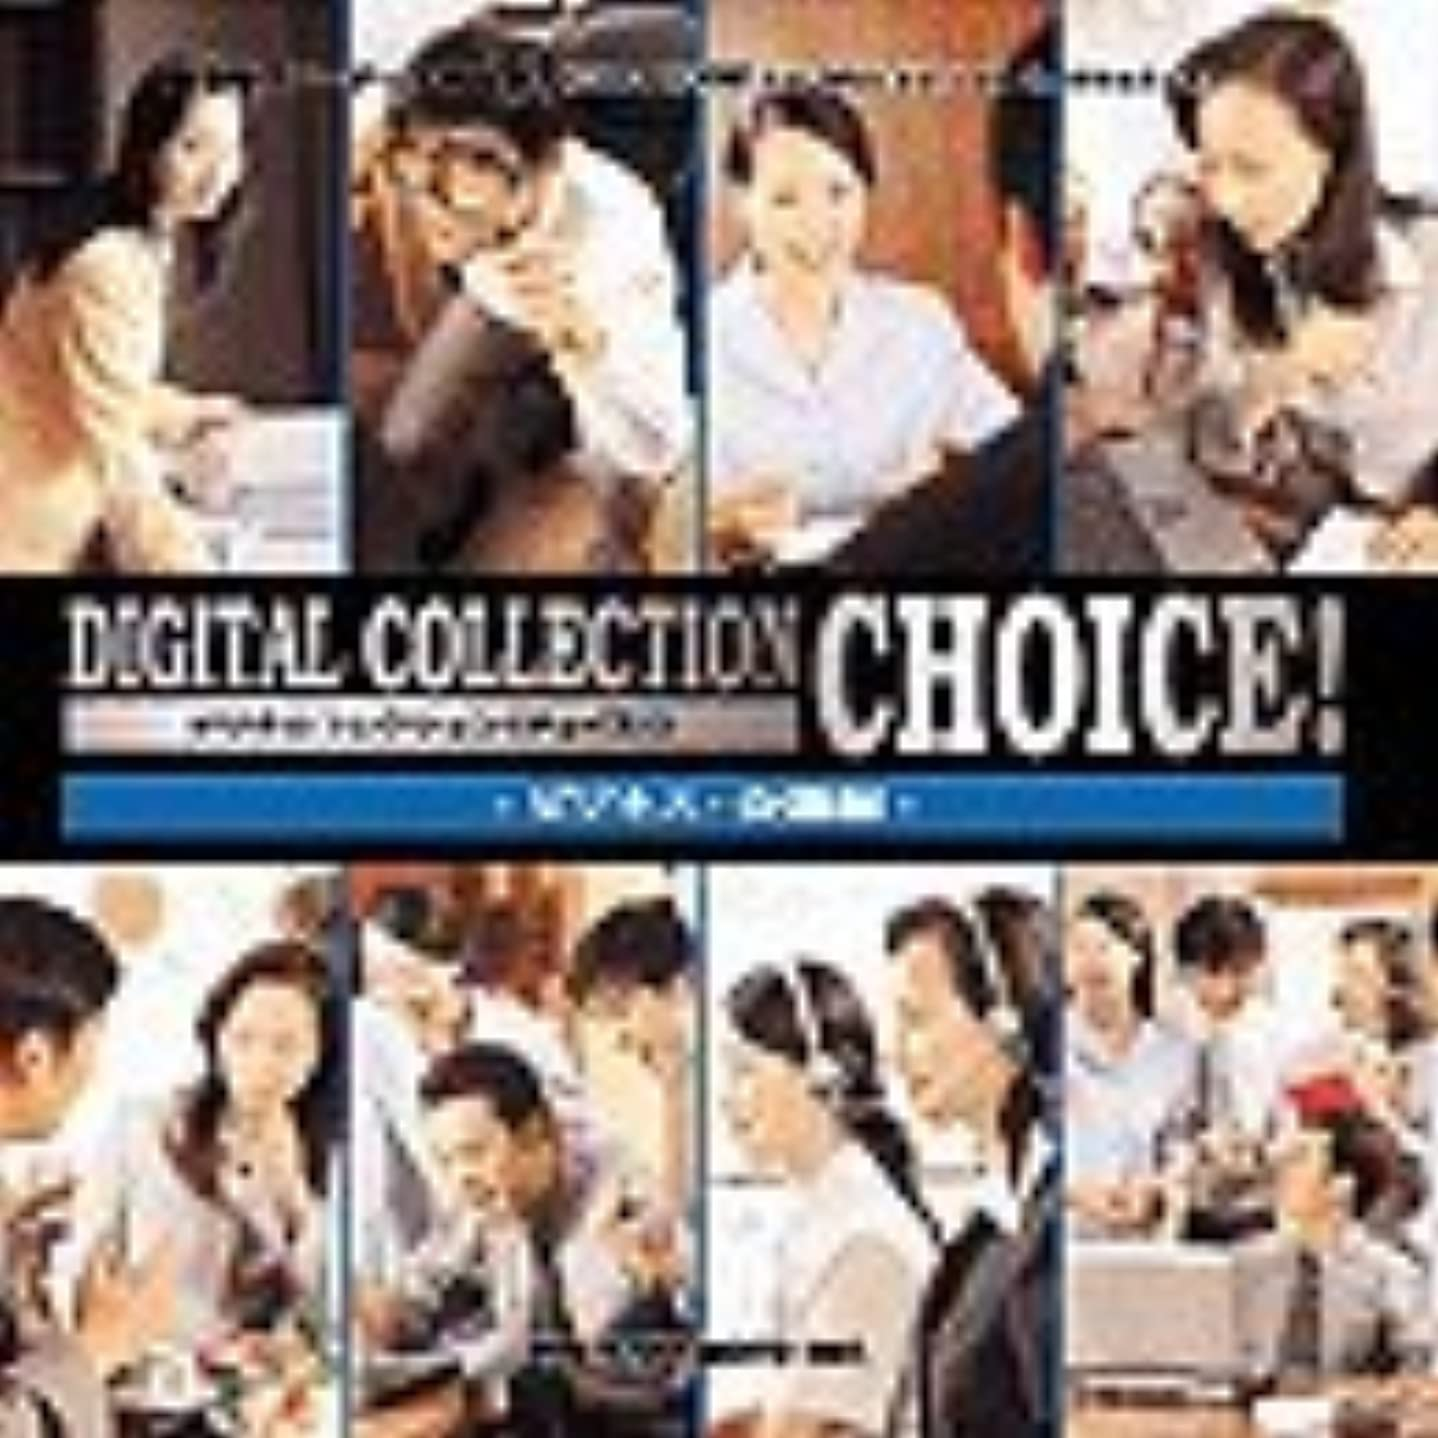 Digital Collection Choice! ビジネス?会議編